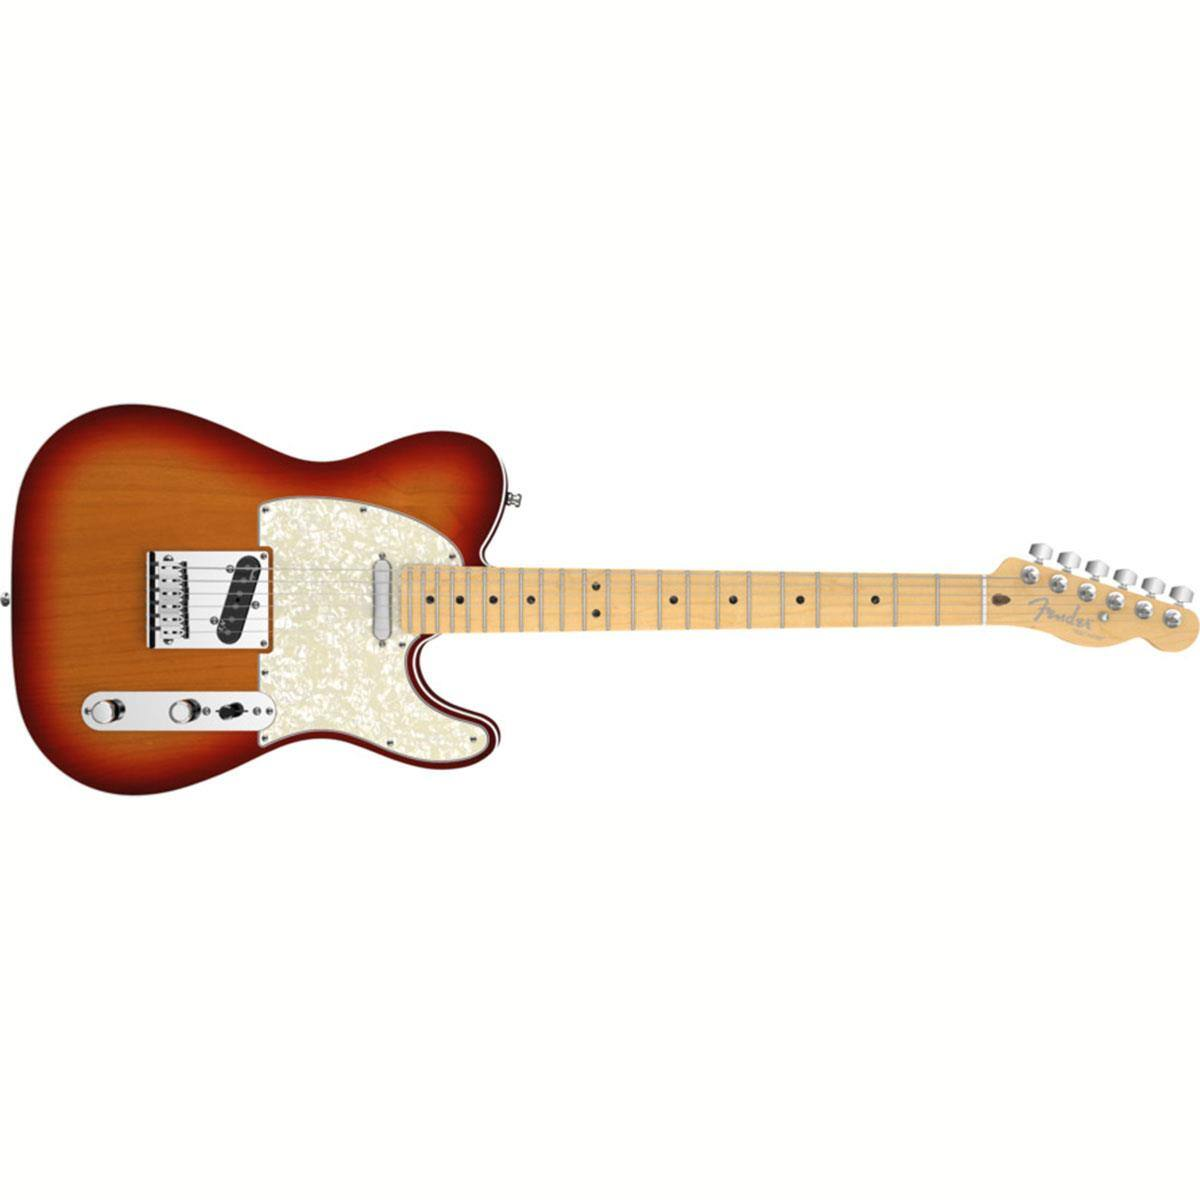 Fender American Deluxe Telecaster Electric Guitar (Aged Cherry Burst)  $1000 & More + Free S&H